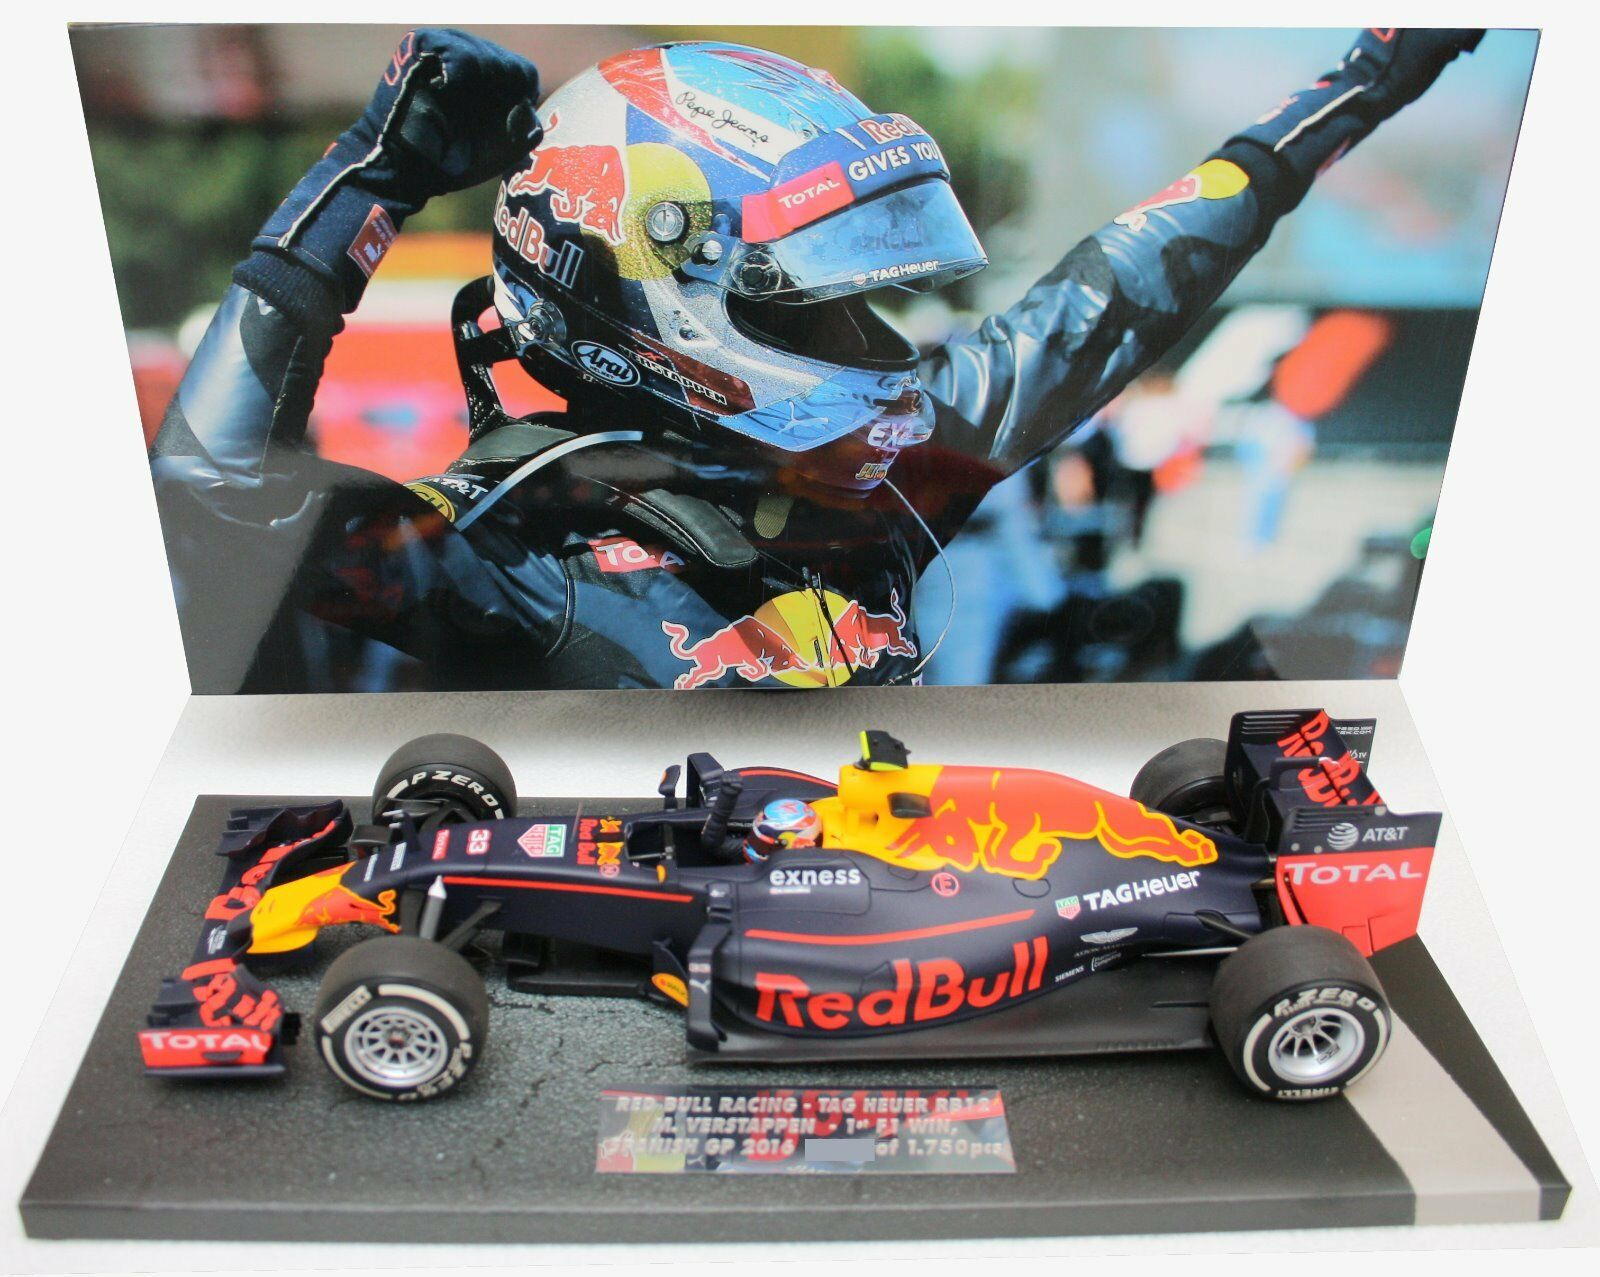 rouge Bull Racing RB12 - 1e F1 winst Max Verstappen Spaanse GP 2016 Edition 8